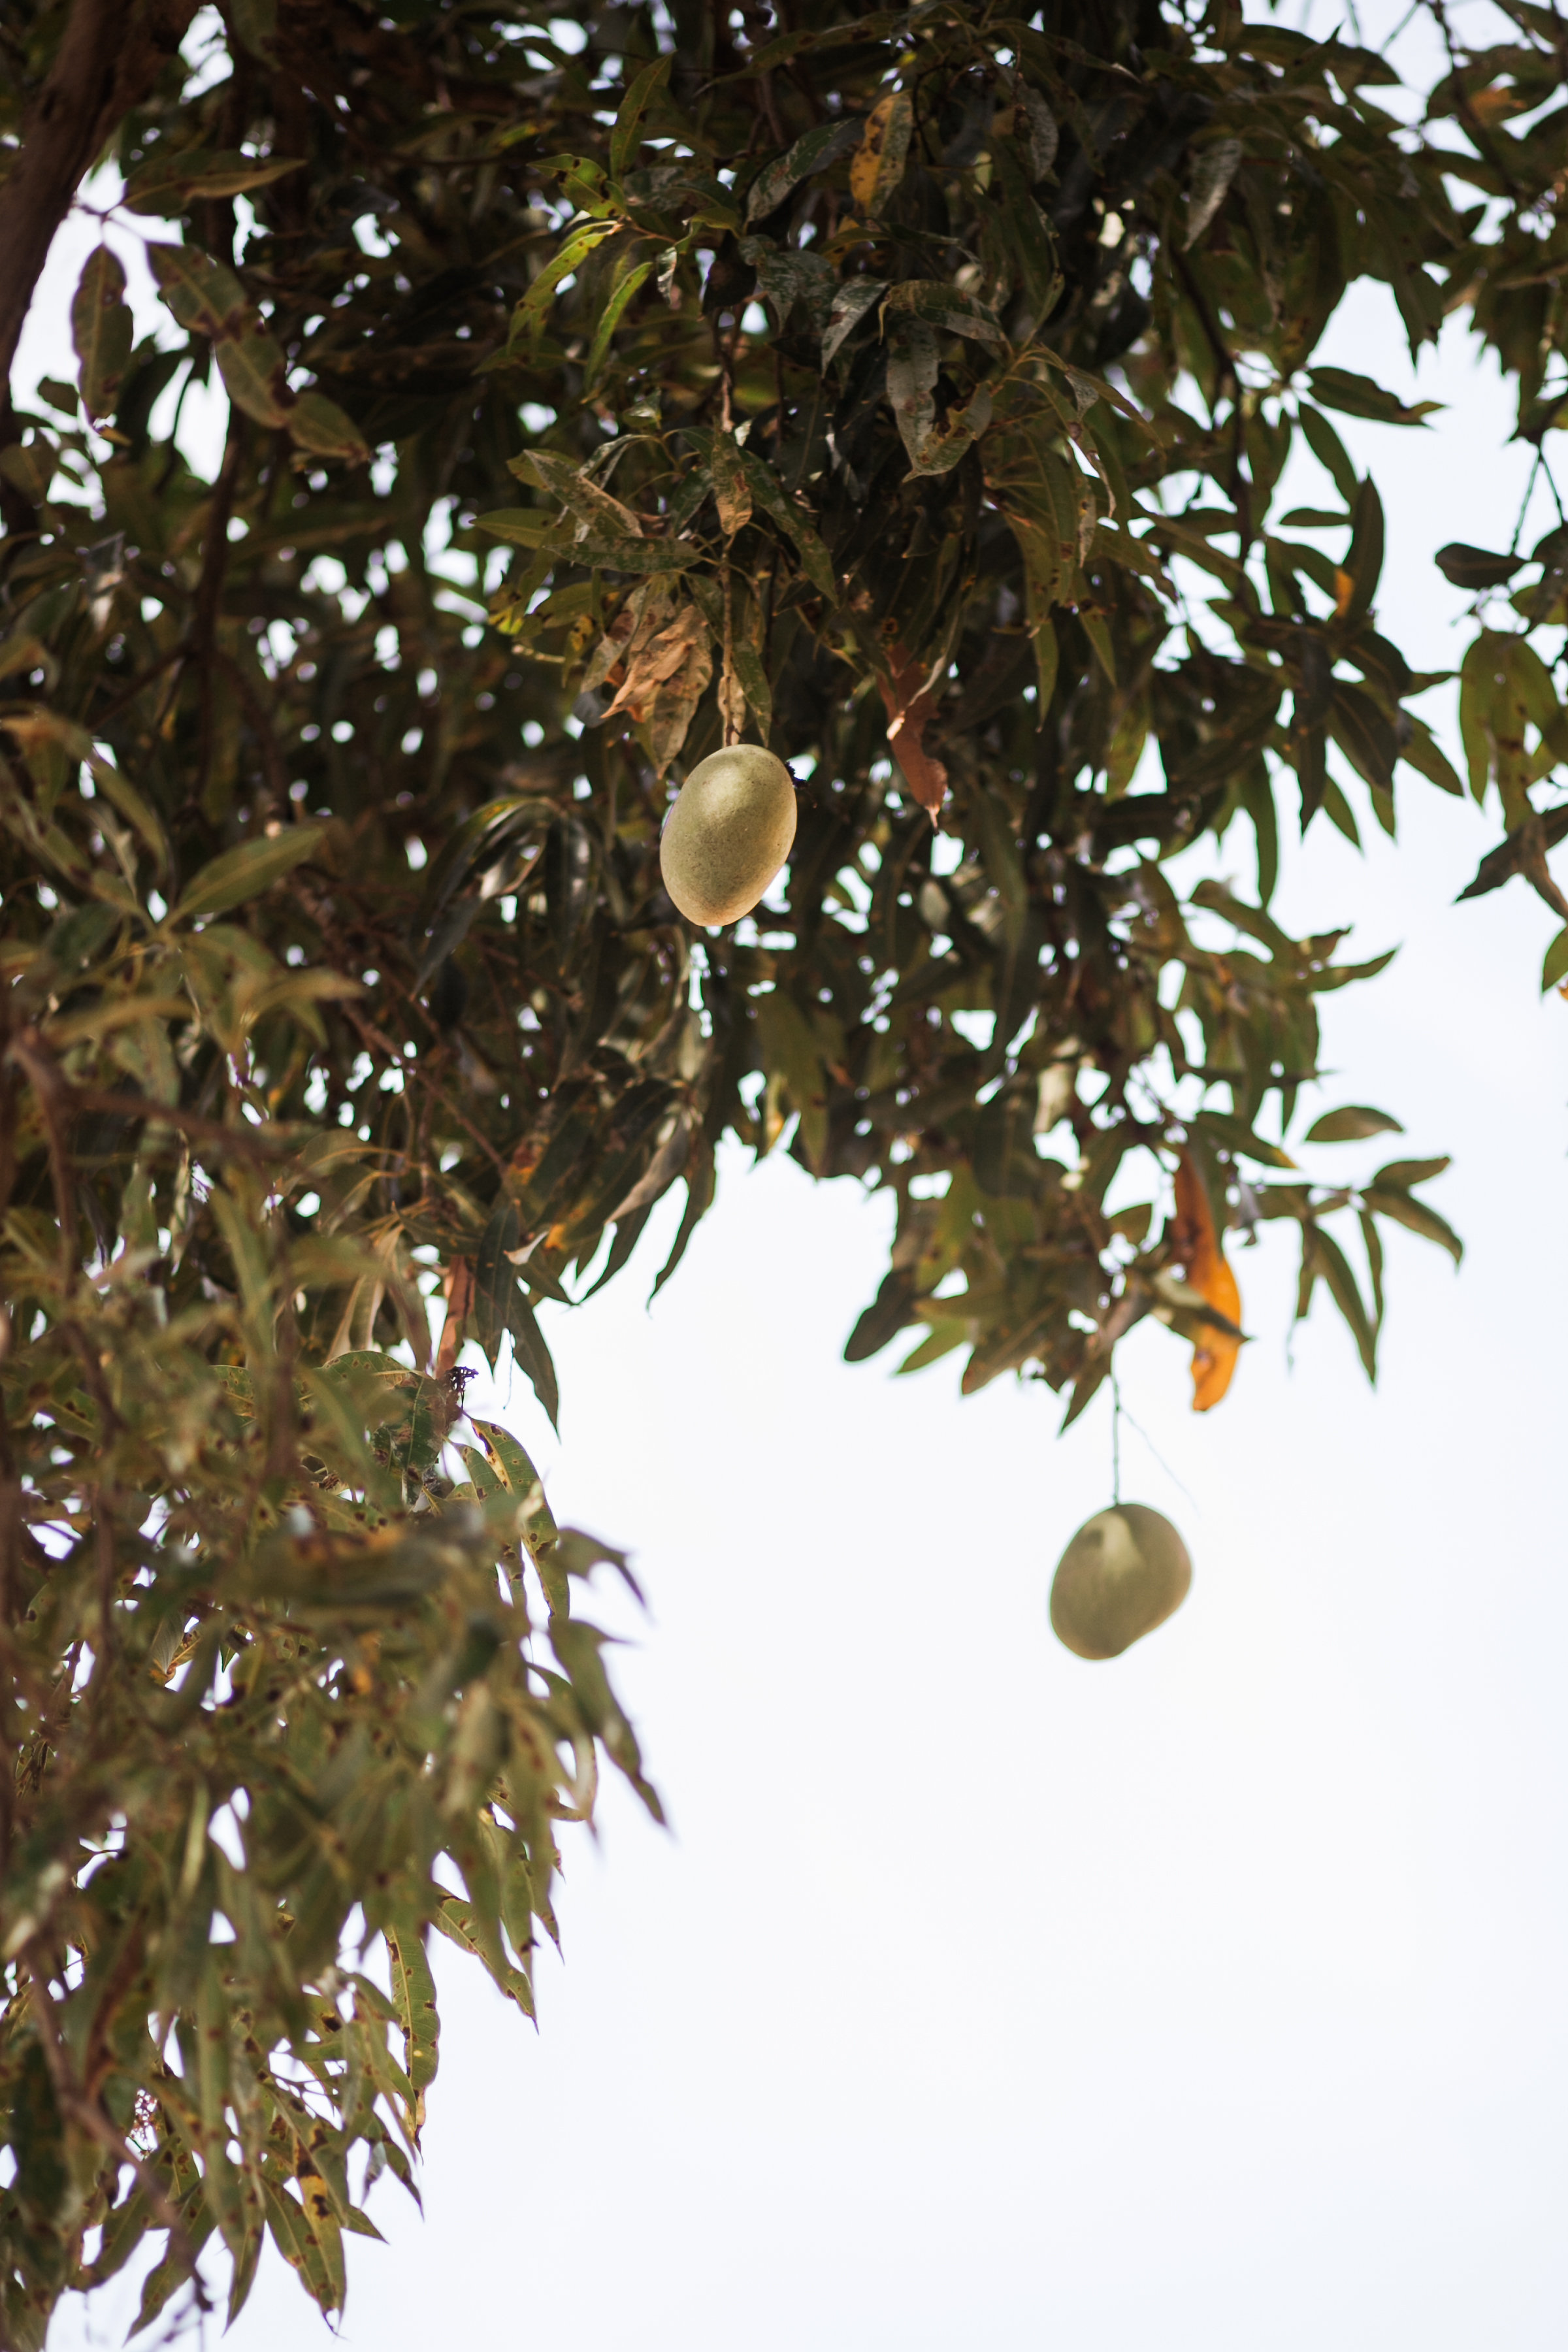 "Mango Tree School was built next to a large mango tree on the property. As the founder and chair of the board, Jeremiah Rukukuye, shared about the founding of the school, ""The shade of the mango tree provides refreshing and a cool breeze to whoever sits underneath it. The tree still produces fruit each year."" The school follows in those footsteps and provides education and refreshing to its students."